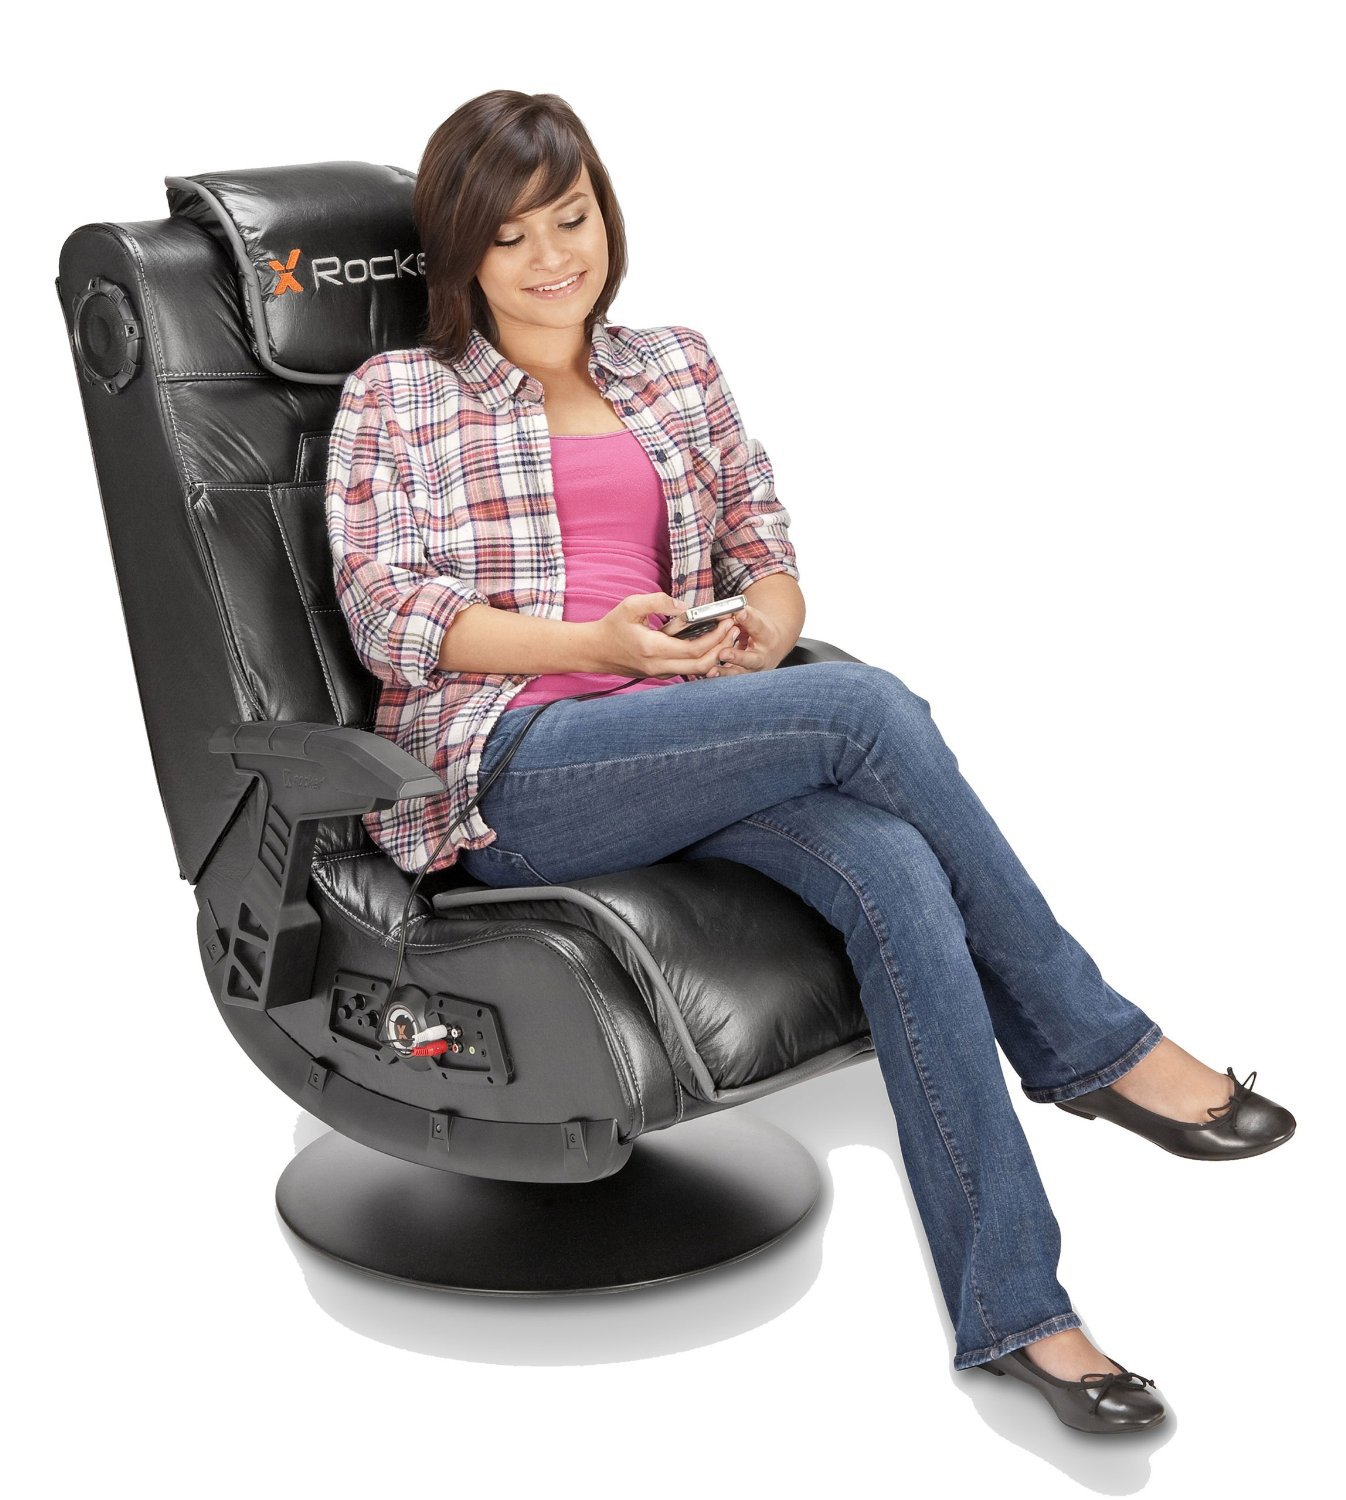 Amazon.com: SILLON MULTIMEDIA INALAMBRICO X ROCKER PRO, con ...